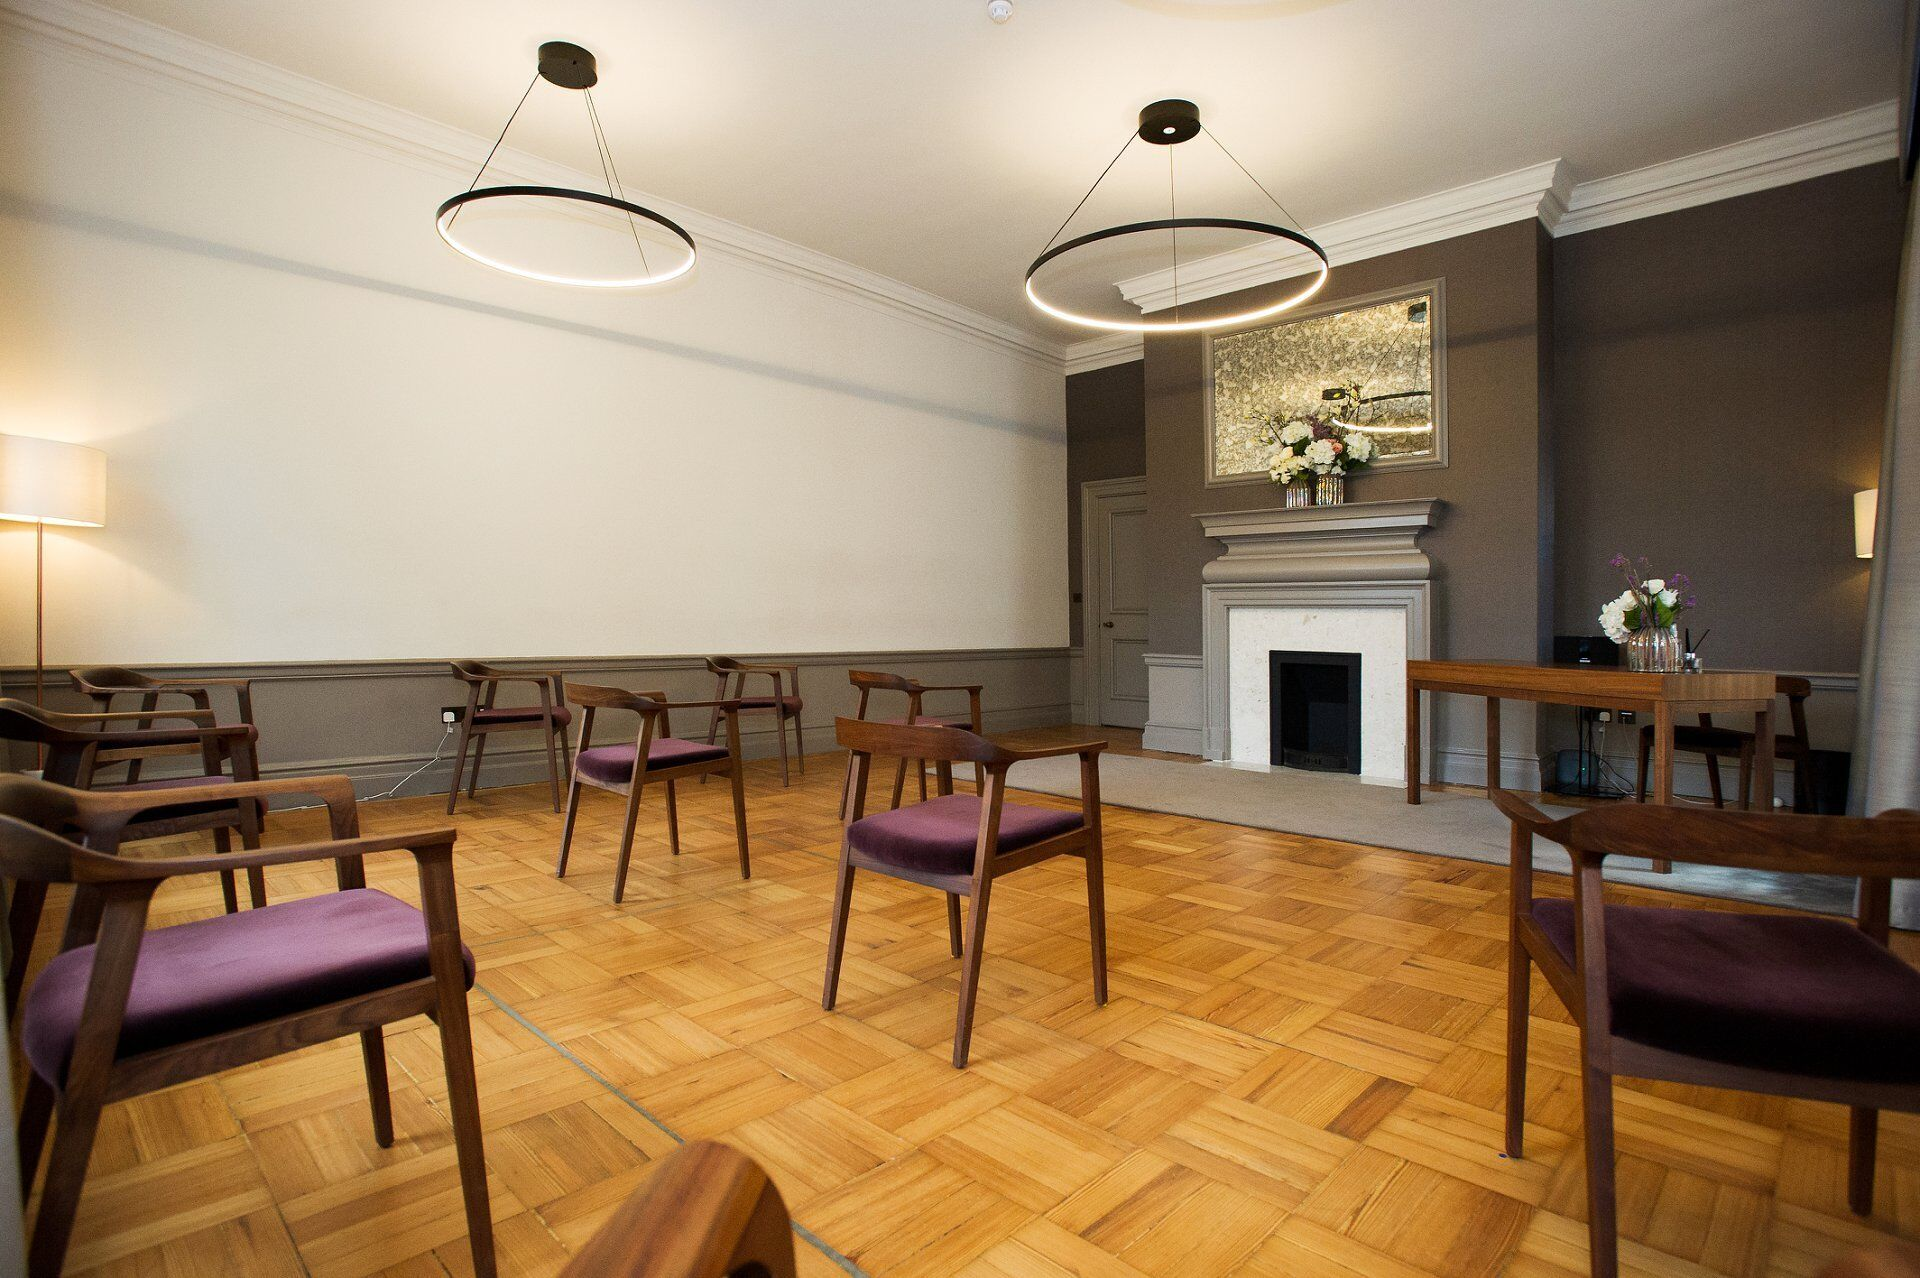 view from the rear of the mayfair room showing ten socially distanced chairs